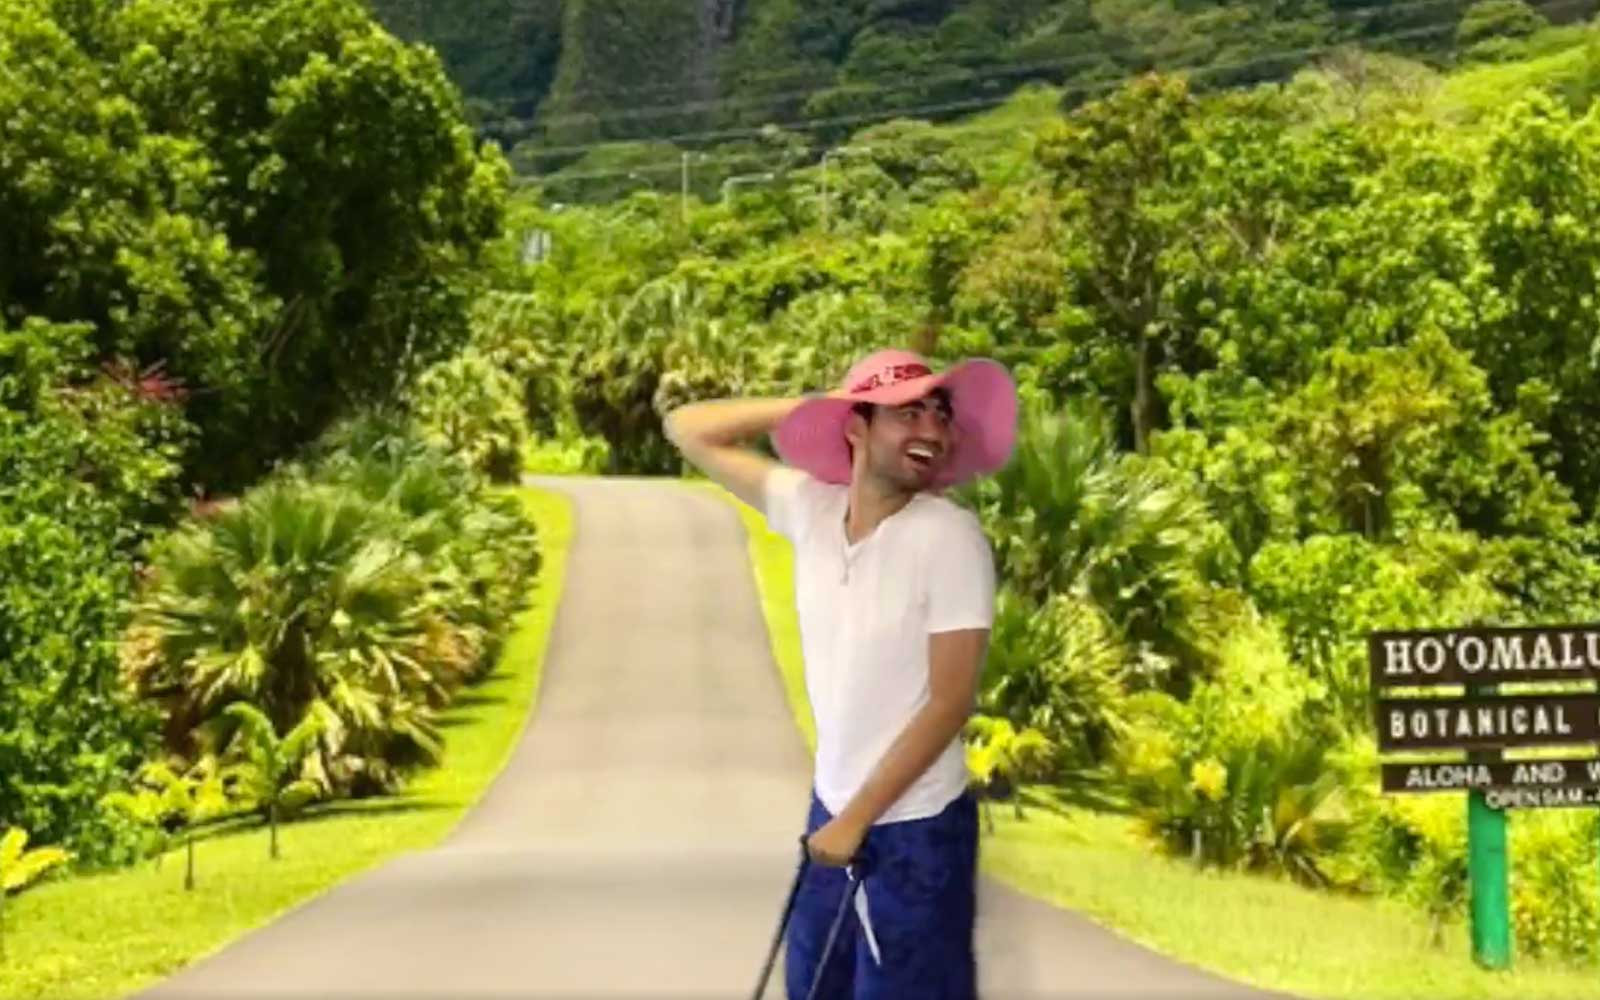 This Guy Couldn't Afford a Hawaiian Vacation so He Faked It